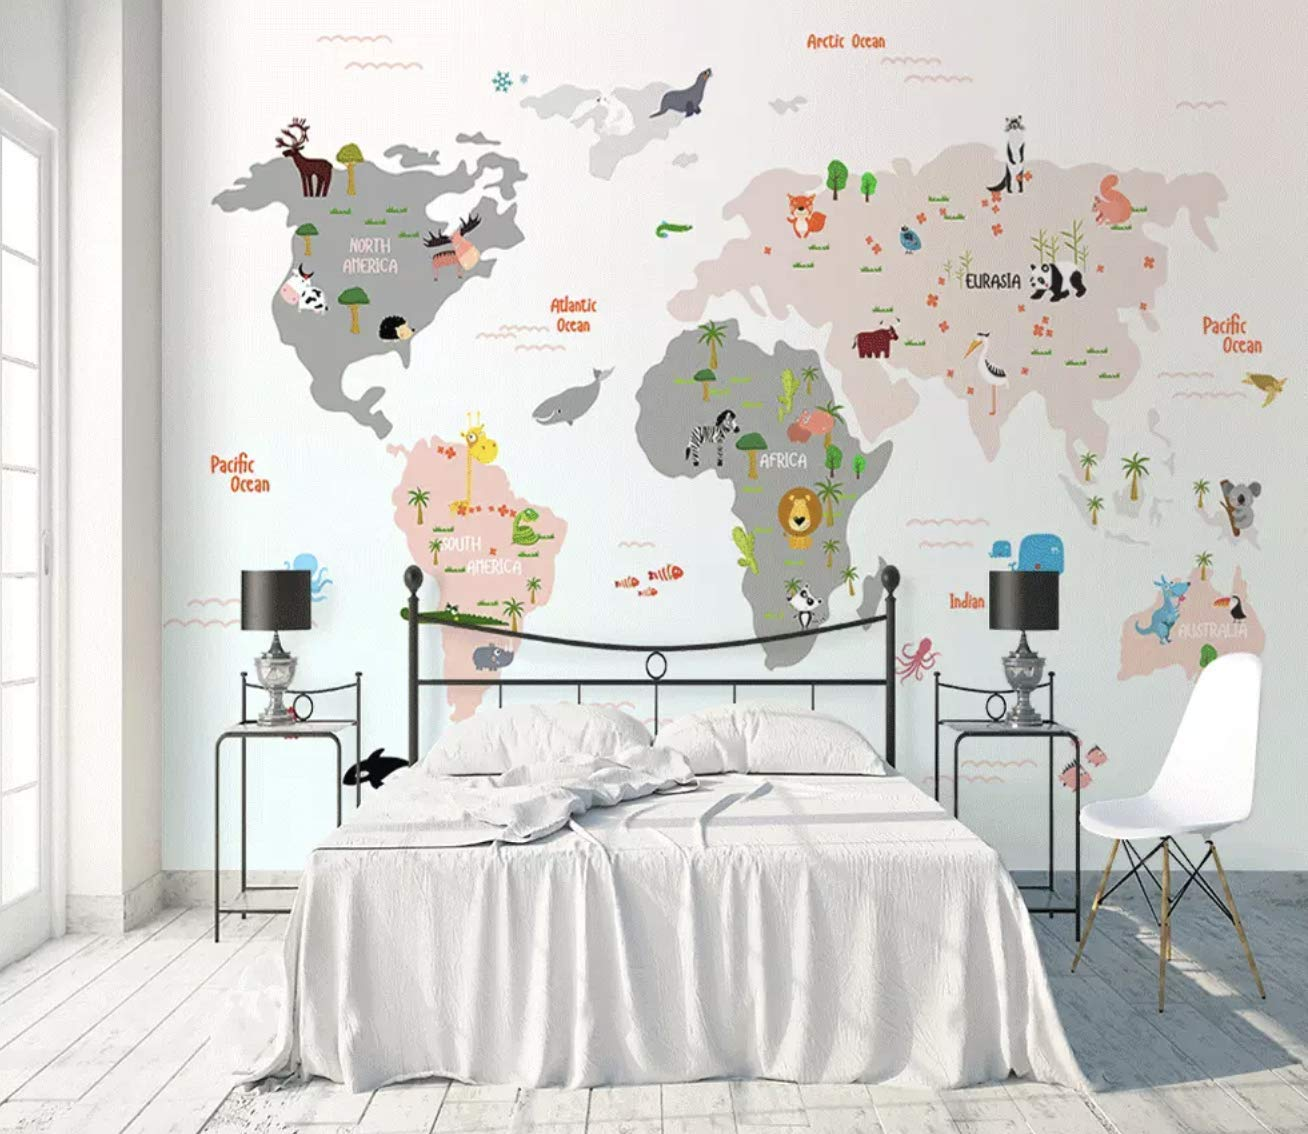 10 Best World Map for Kids Reviews in 2021 20